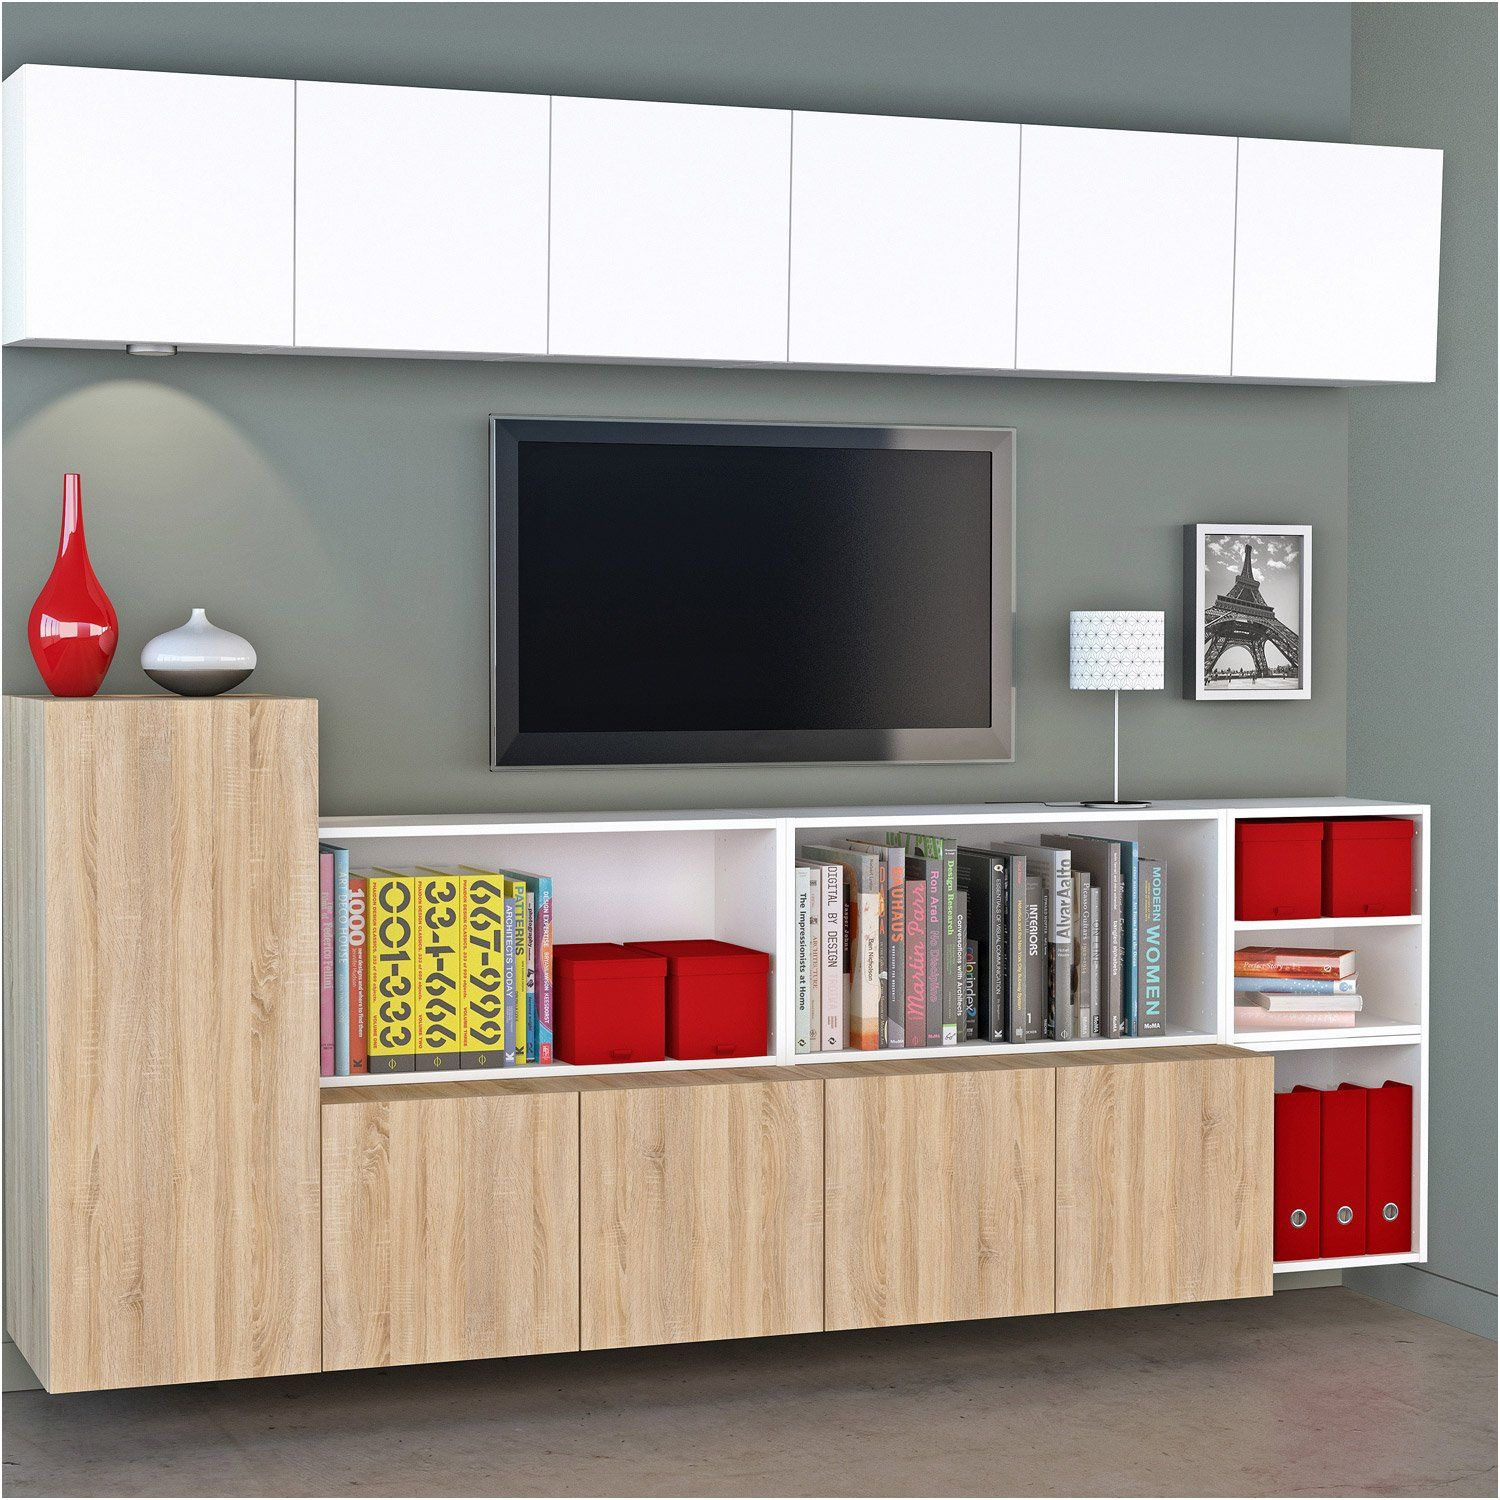 Spaceo 8 Précieux Spaceo Etagere Meuble Tv Cabinets Home Dan Decor